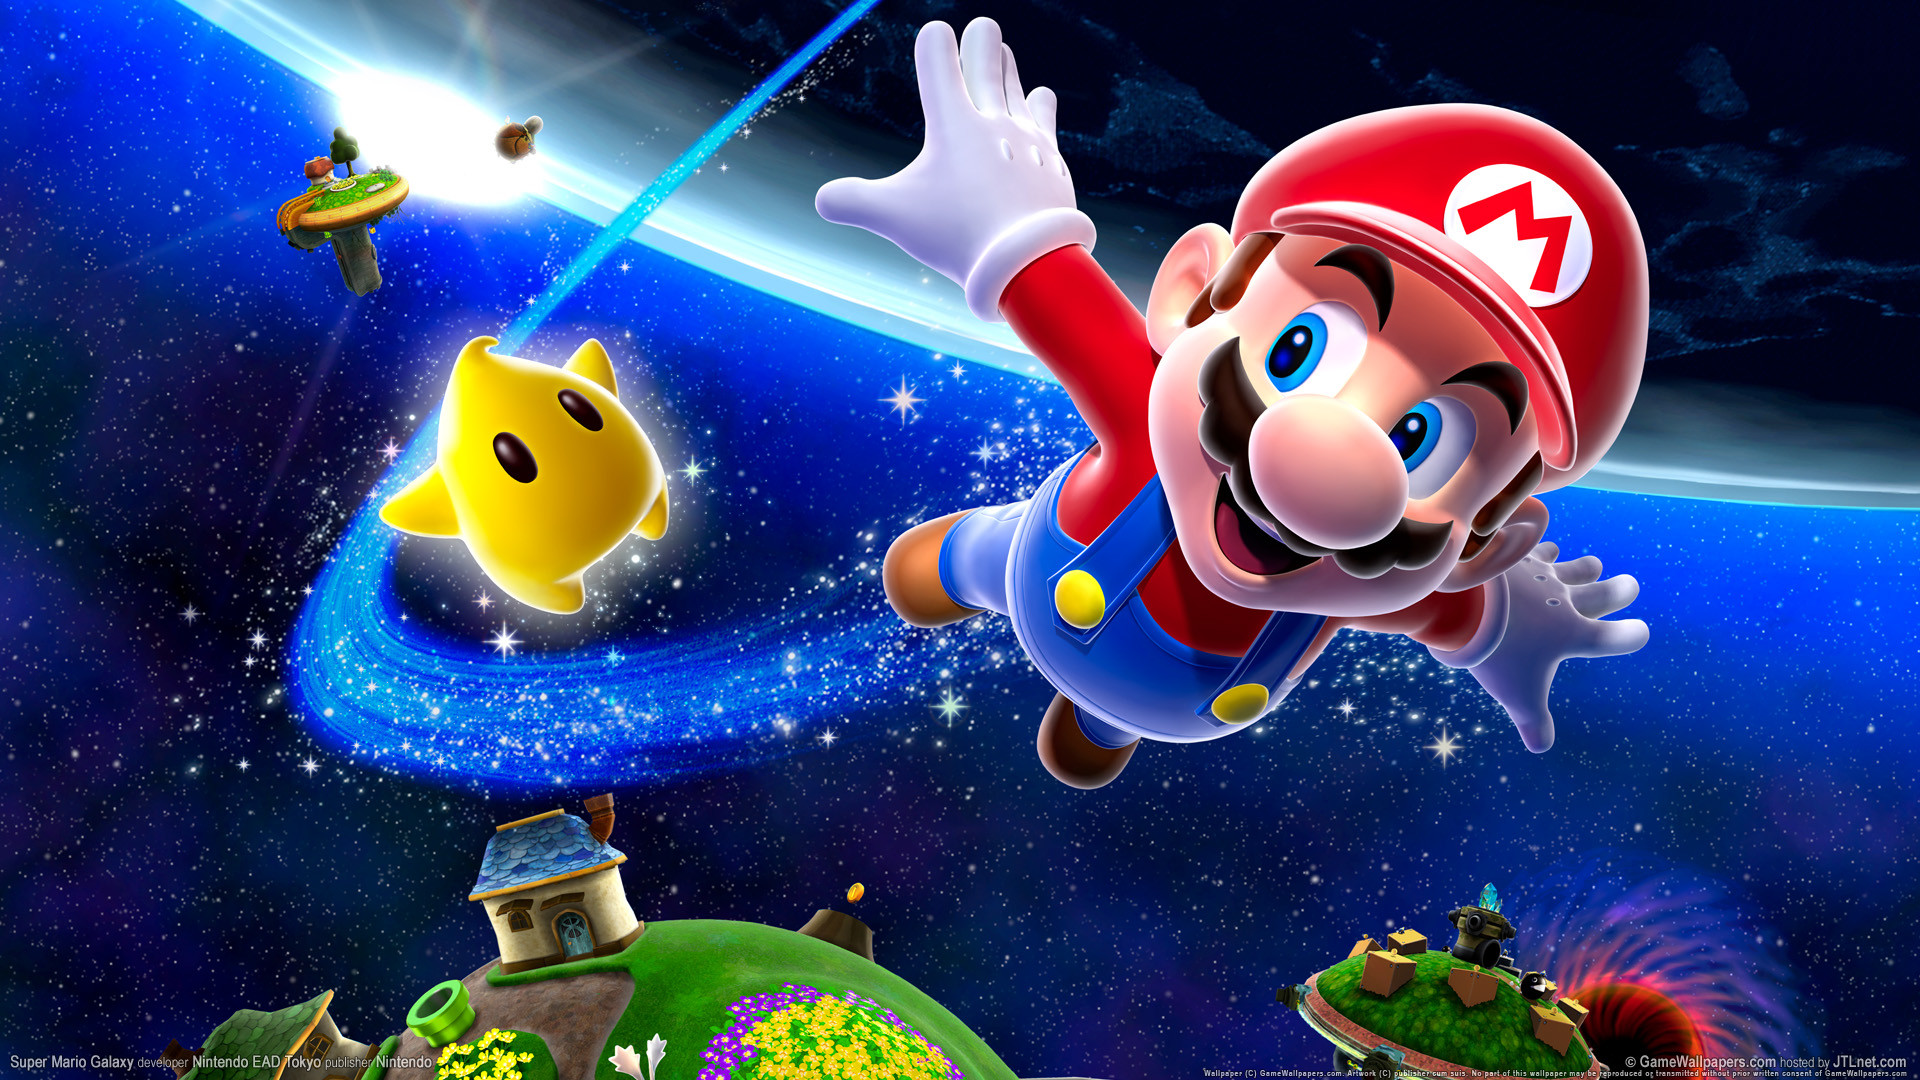 1920x1080 Super Mario 3D Exclusive HD Wallpapers 2595